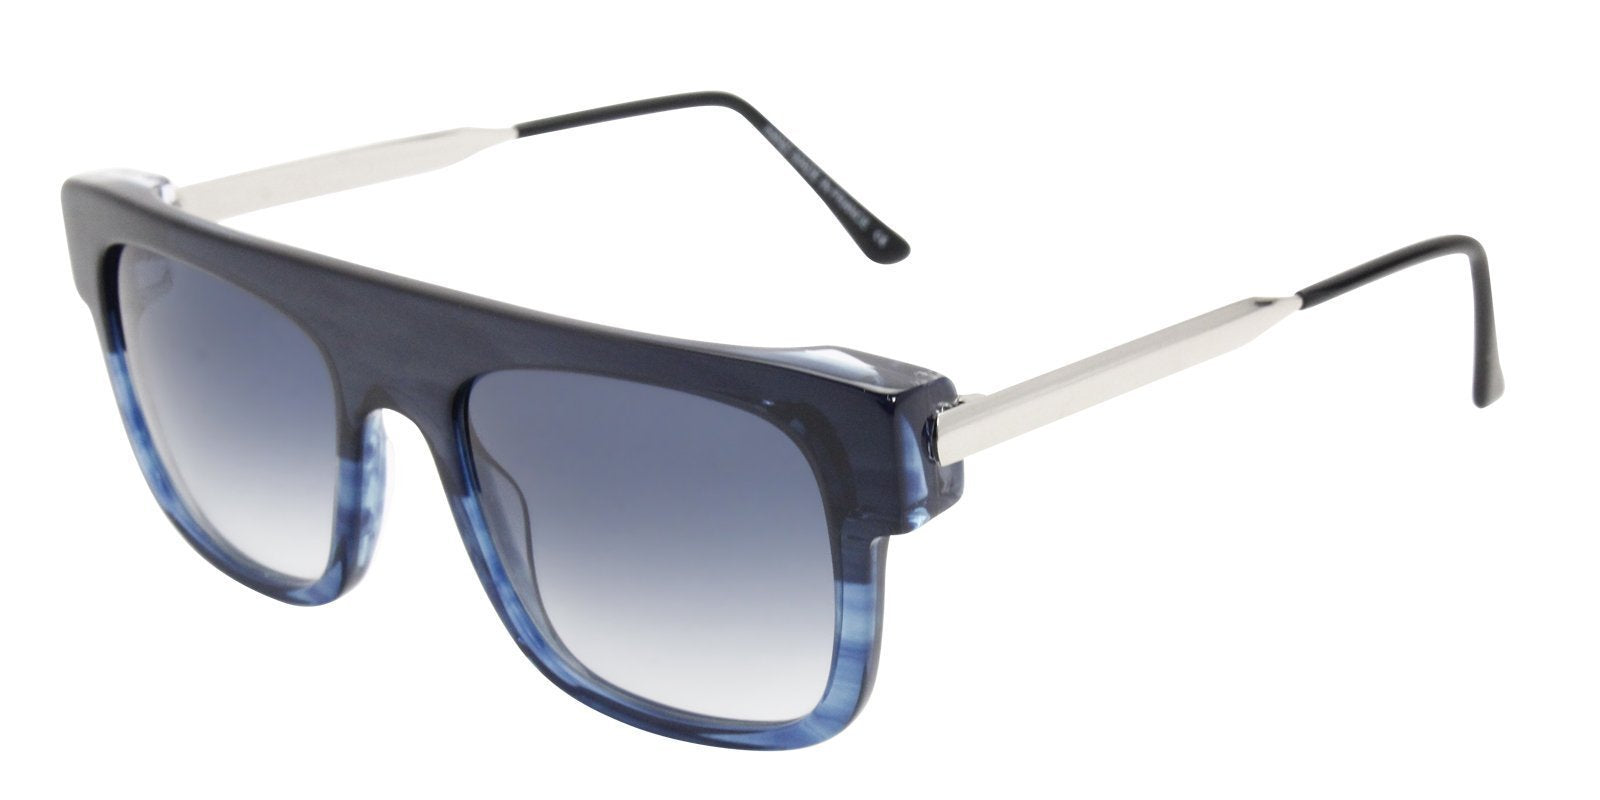 Thierry Lasry - Polarity Blue Rectangular Men, Women Sunglasses - 55mm-Sunglasses-Designer Eyes